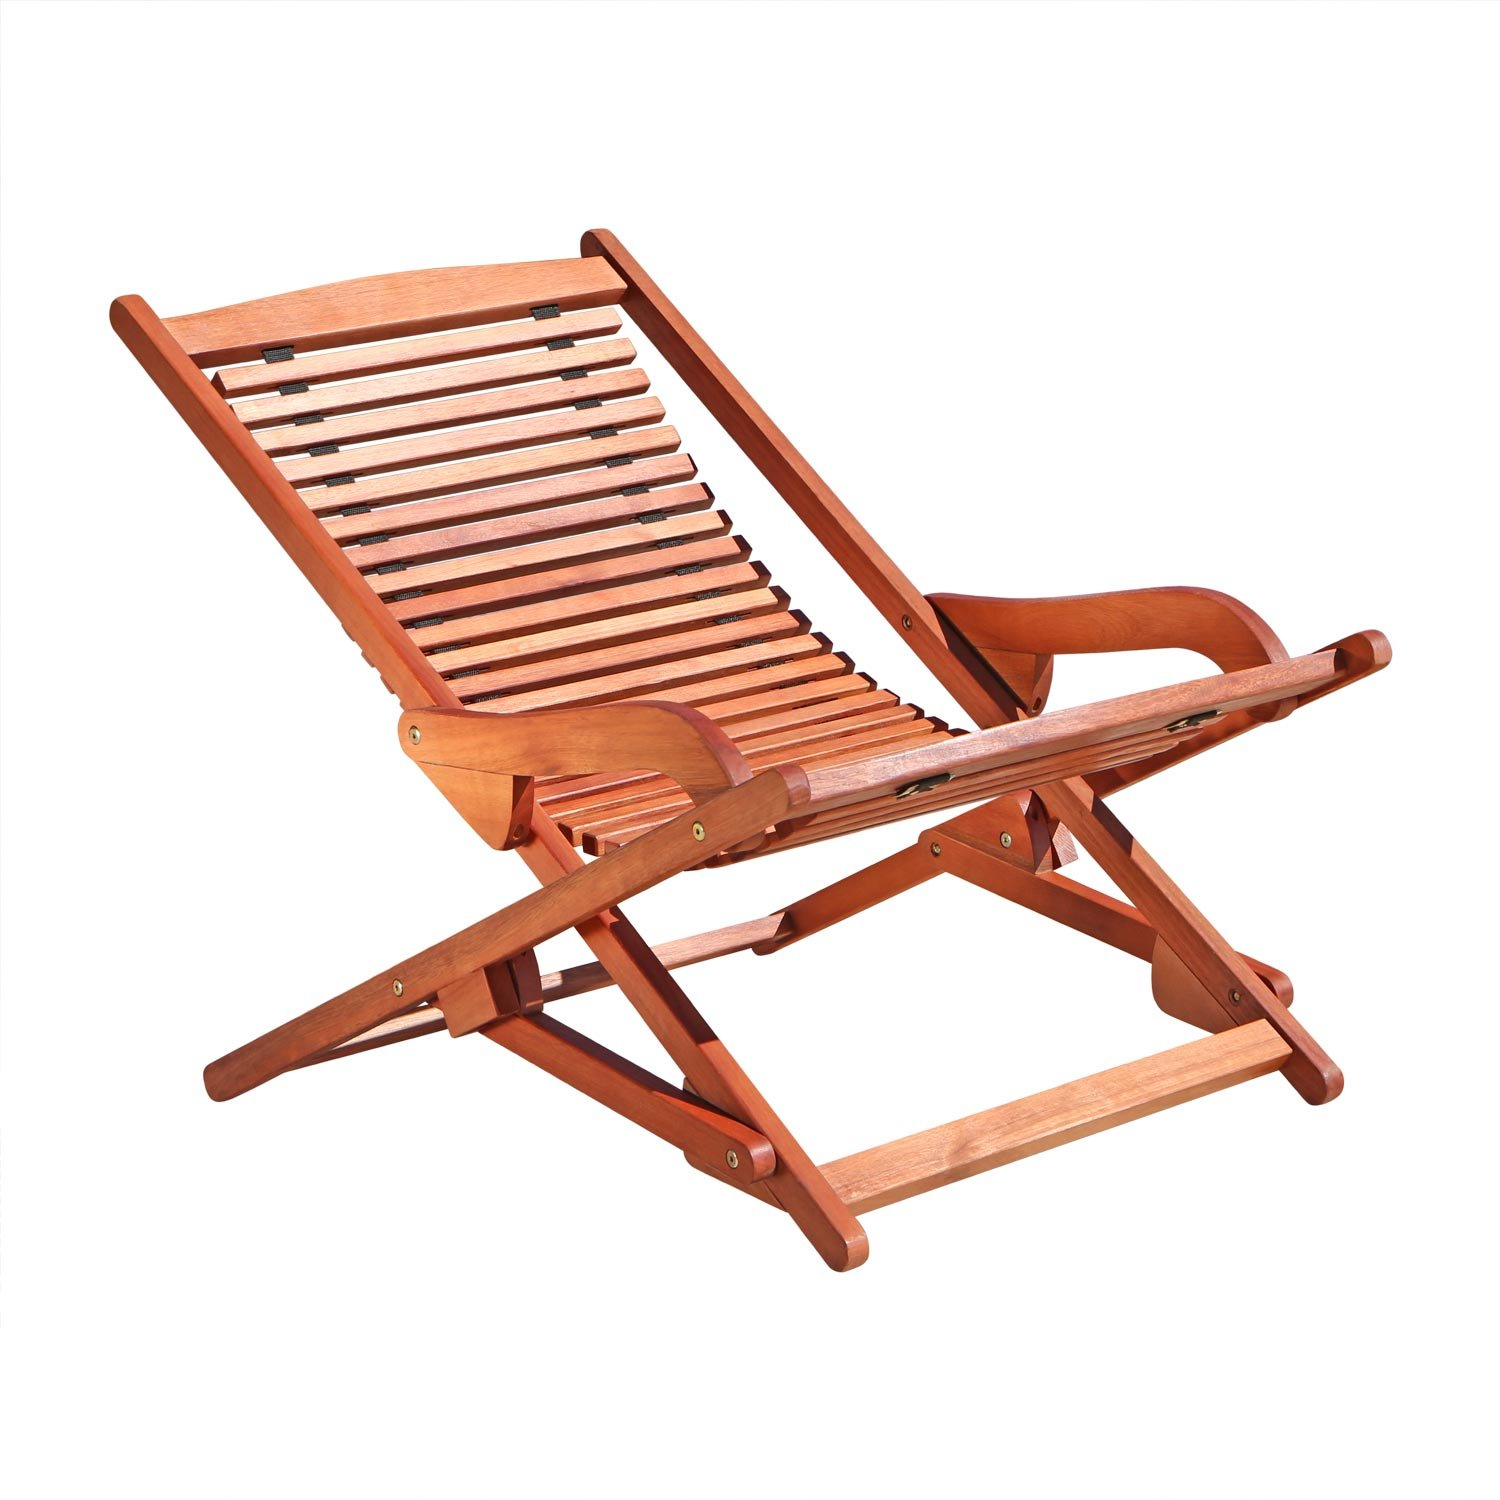 inside patio chaise collection elegant chair of ostrich smsender picture lounge in co chaises beach foldable tulum